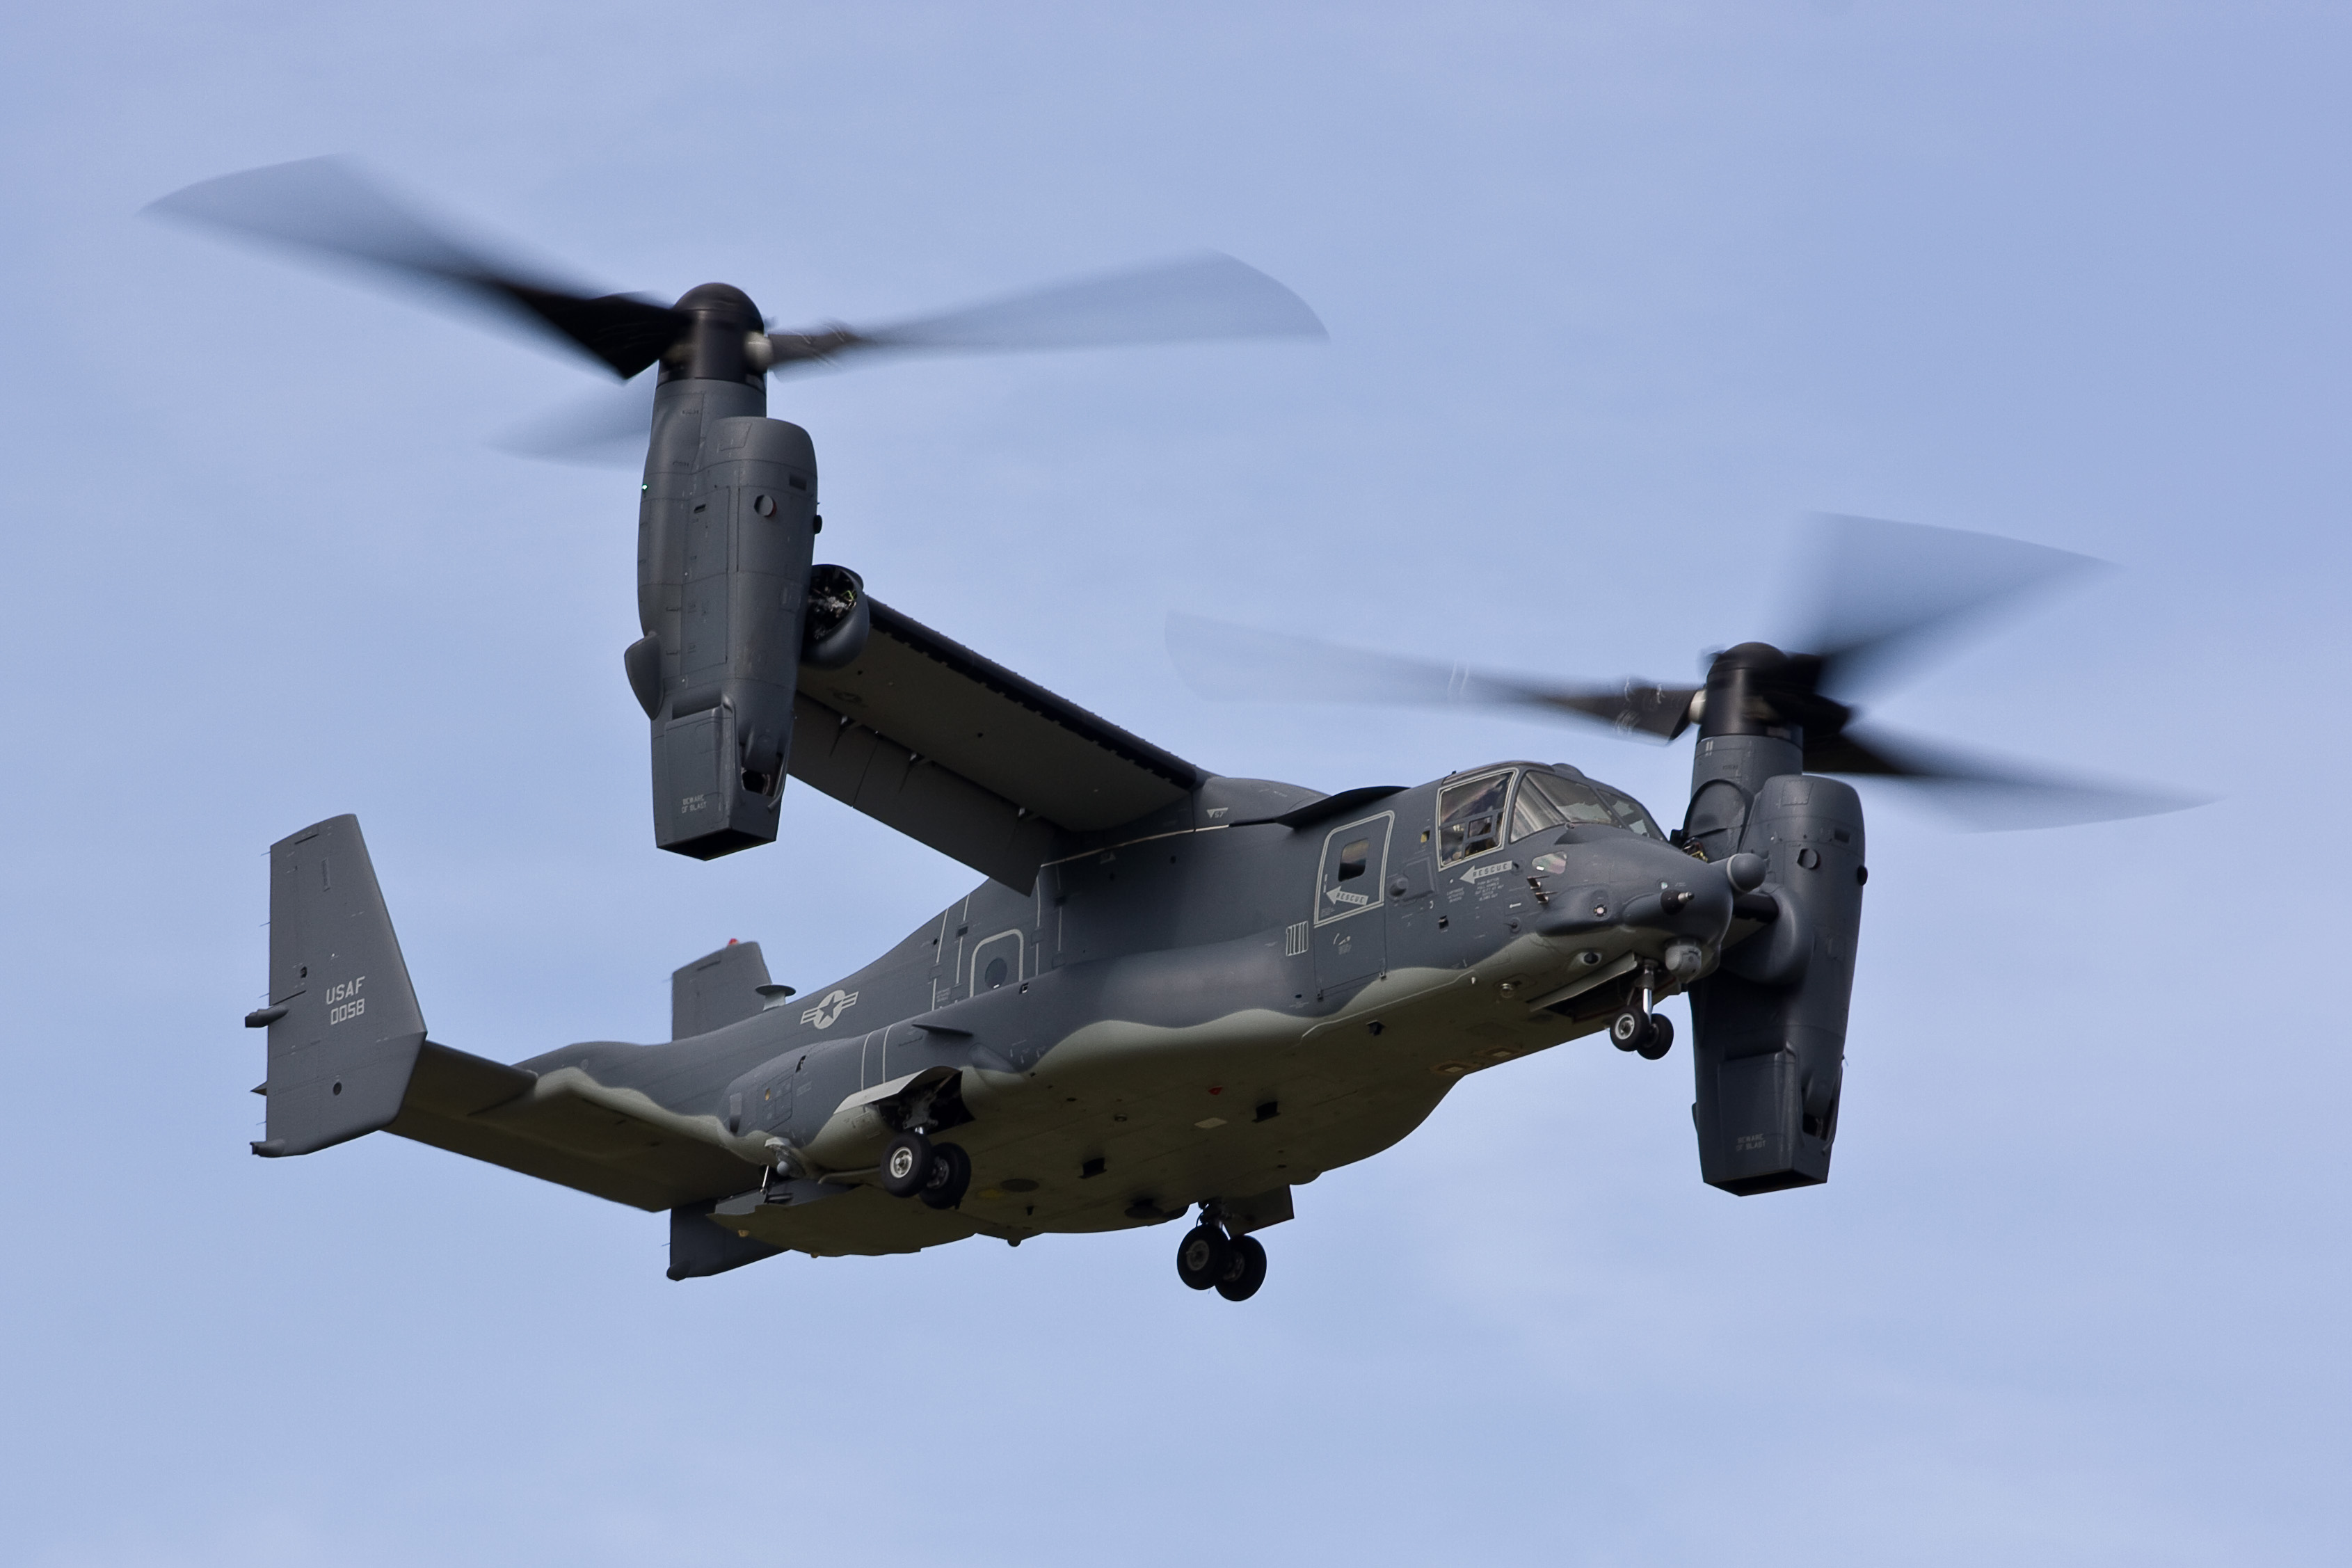 helicopter tilt rotor with File V 22 Osprey  Usaf    Raf Mildenhall   Suffolk  England   26th Sept  2013 on Cargo Drones In Humanitarian Contexts Meeting Summary further 36902788 besides V 22 Losses as well Quad VTOL Concept 387161783 likewise The Fastest Helicopter On Earth.